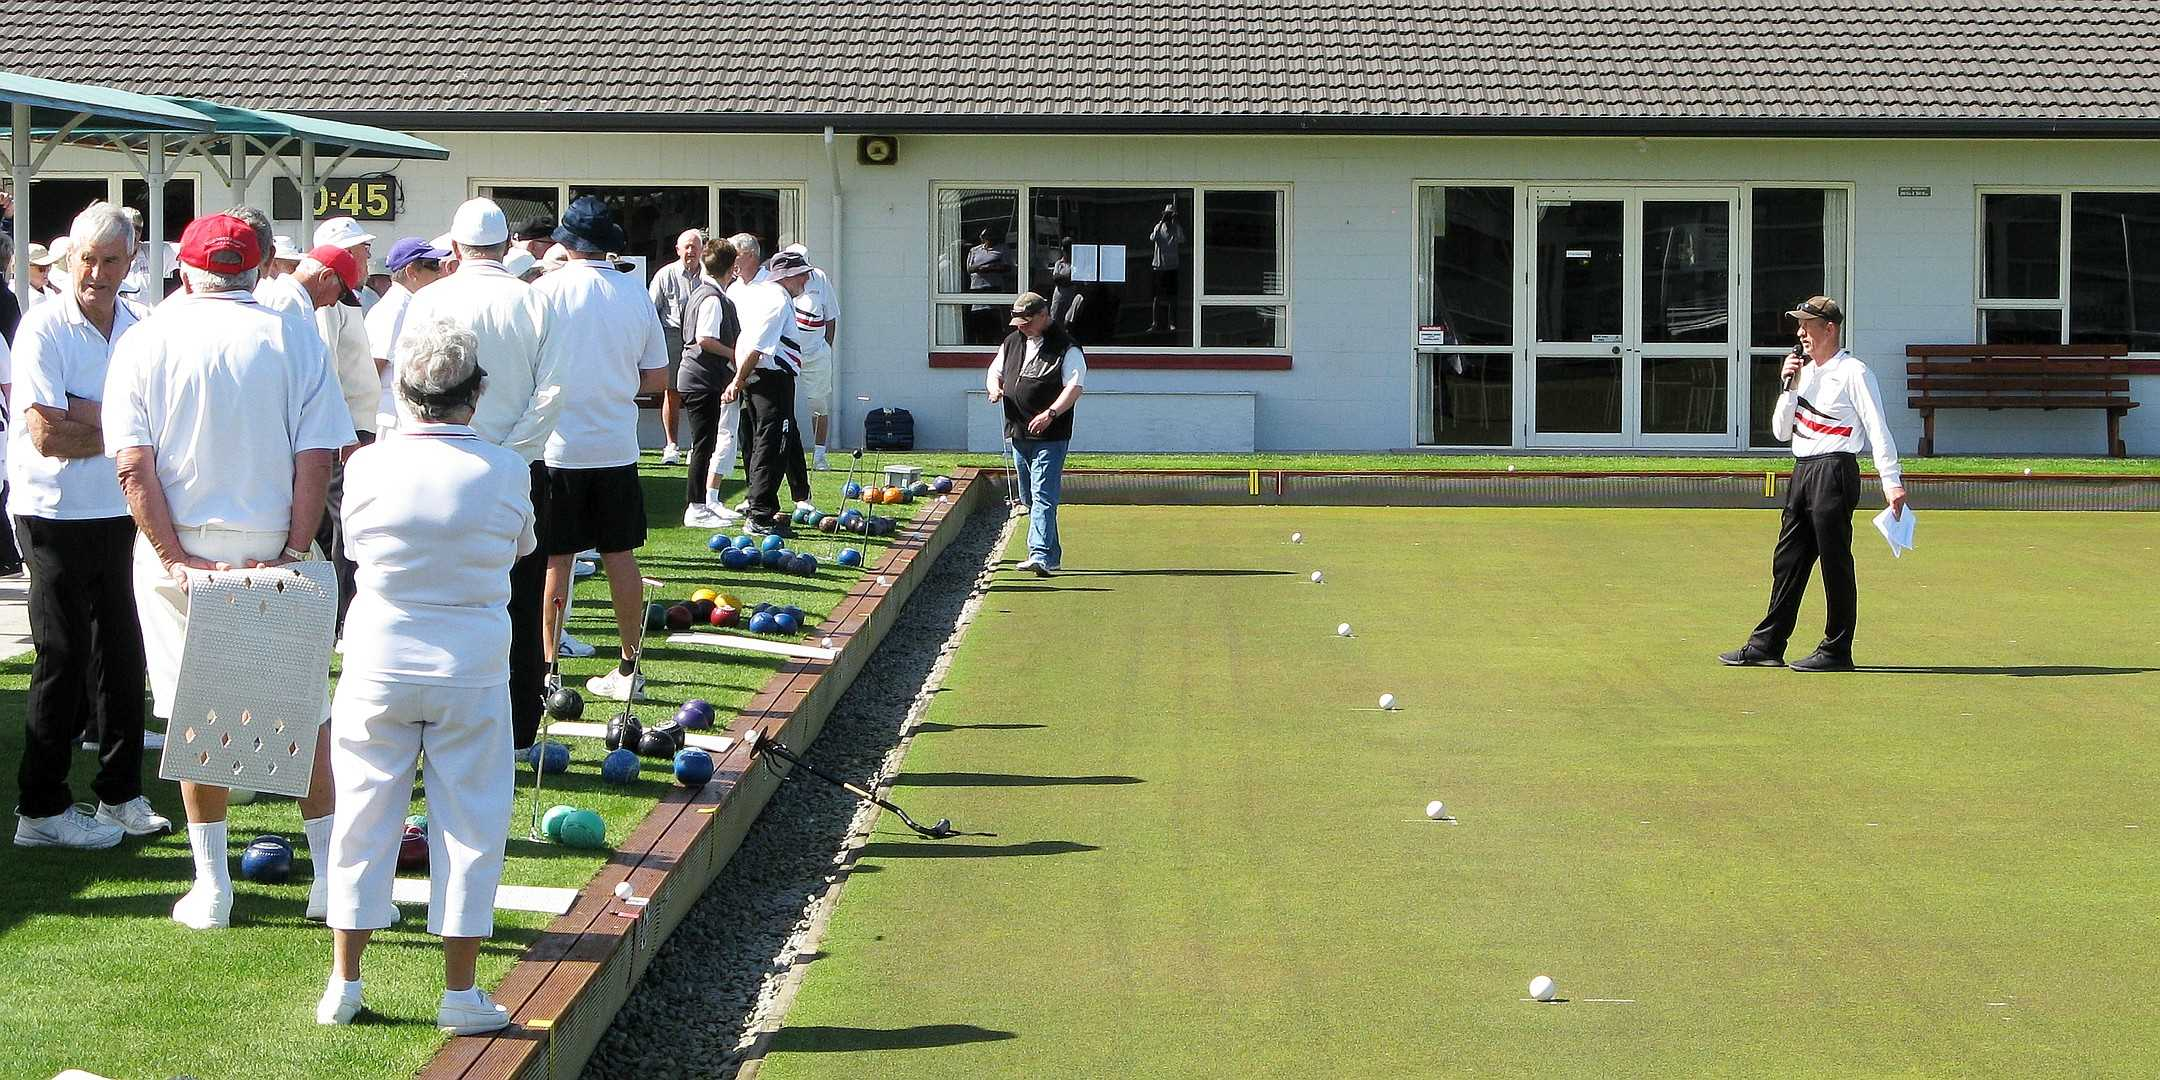 Bruce Welcomes Bowlers to the Bisset Trophy Mixed Triples